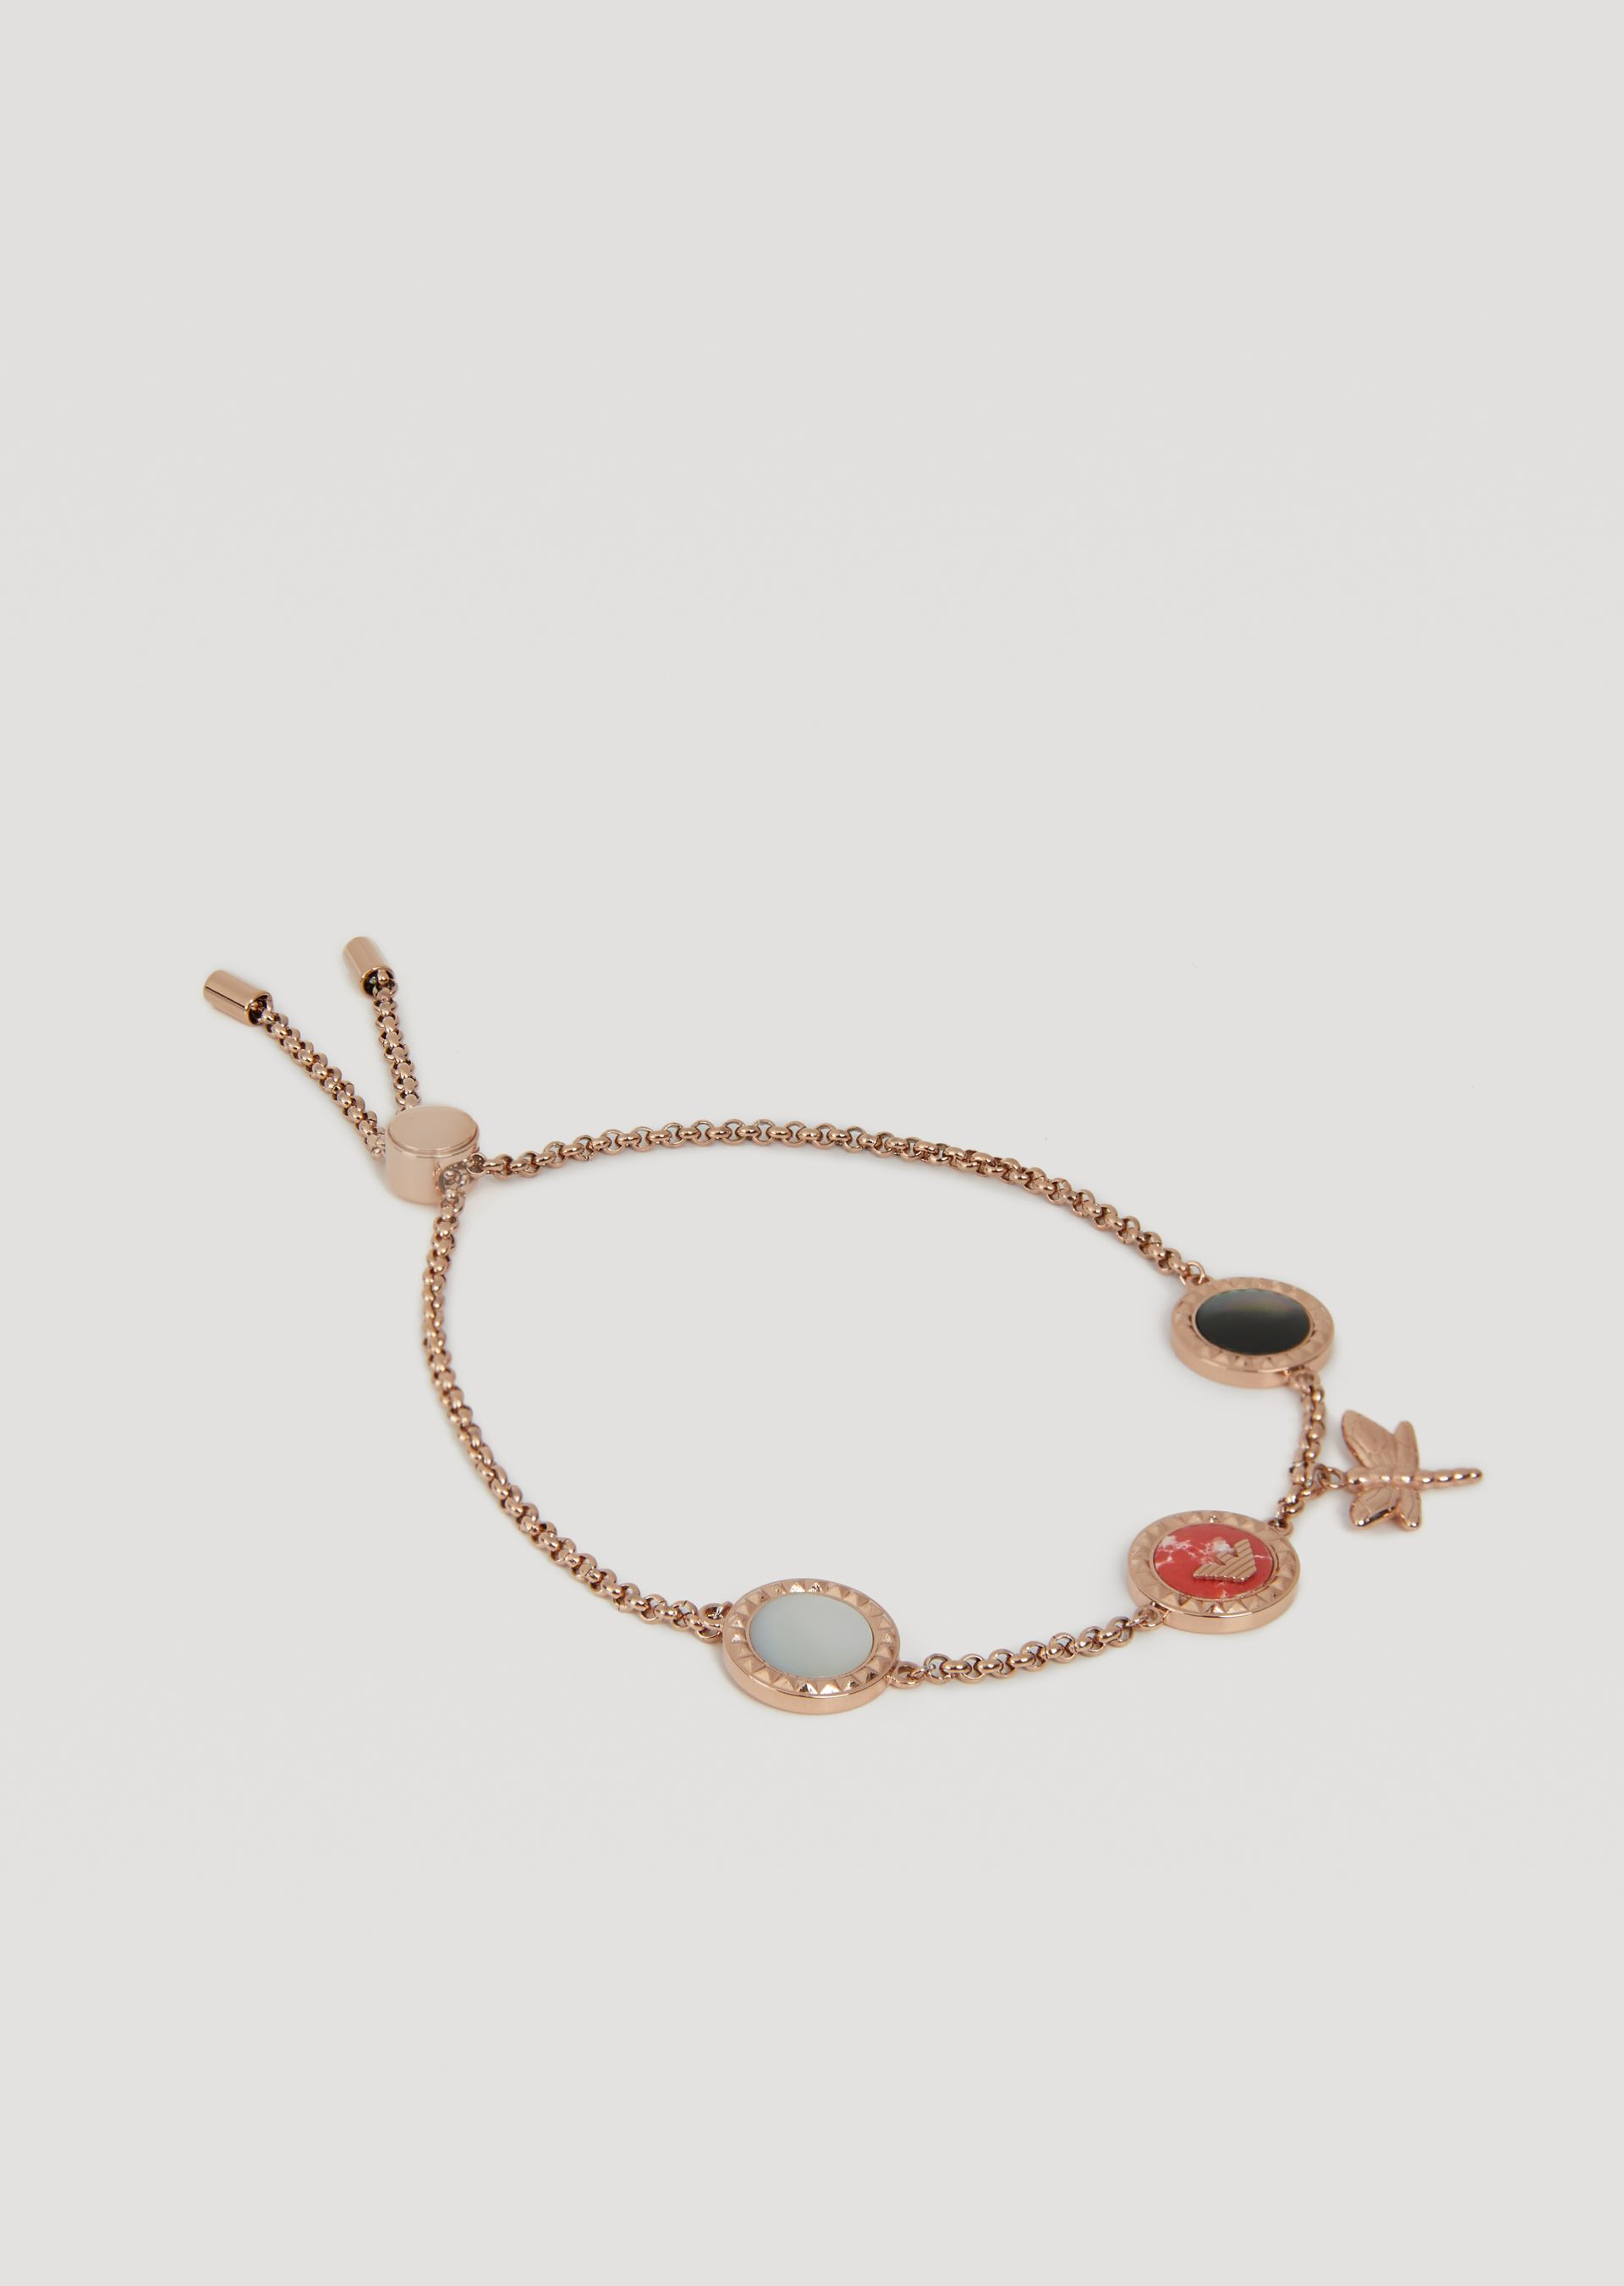 EMPORIO ARMANI Bracelet featuring enamel hoops with logo and pendant